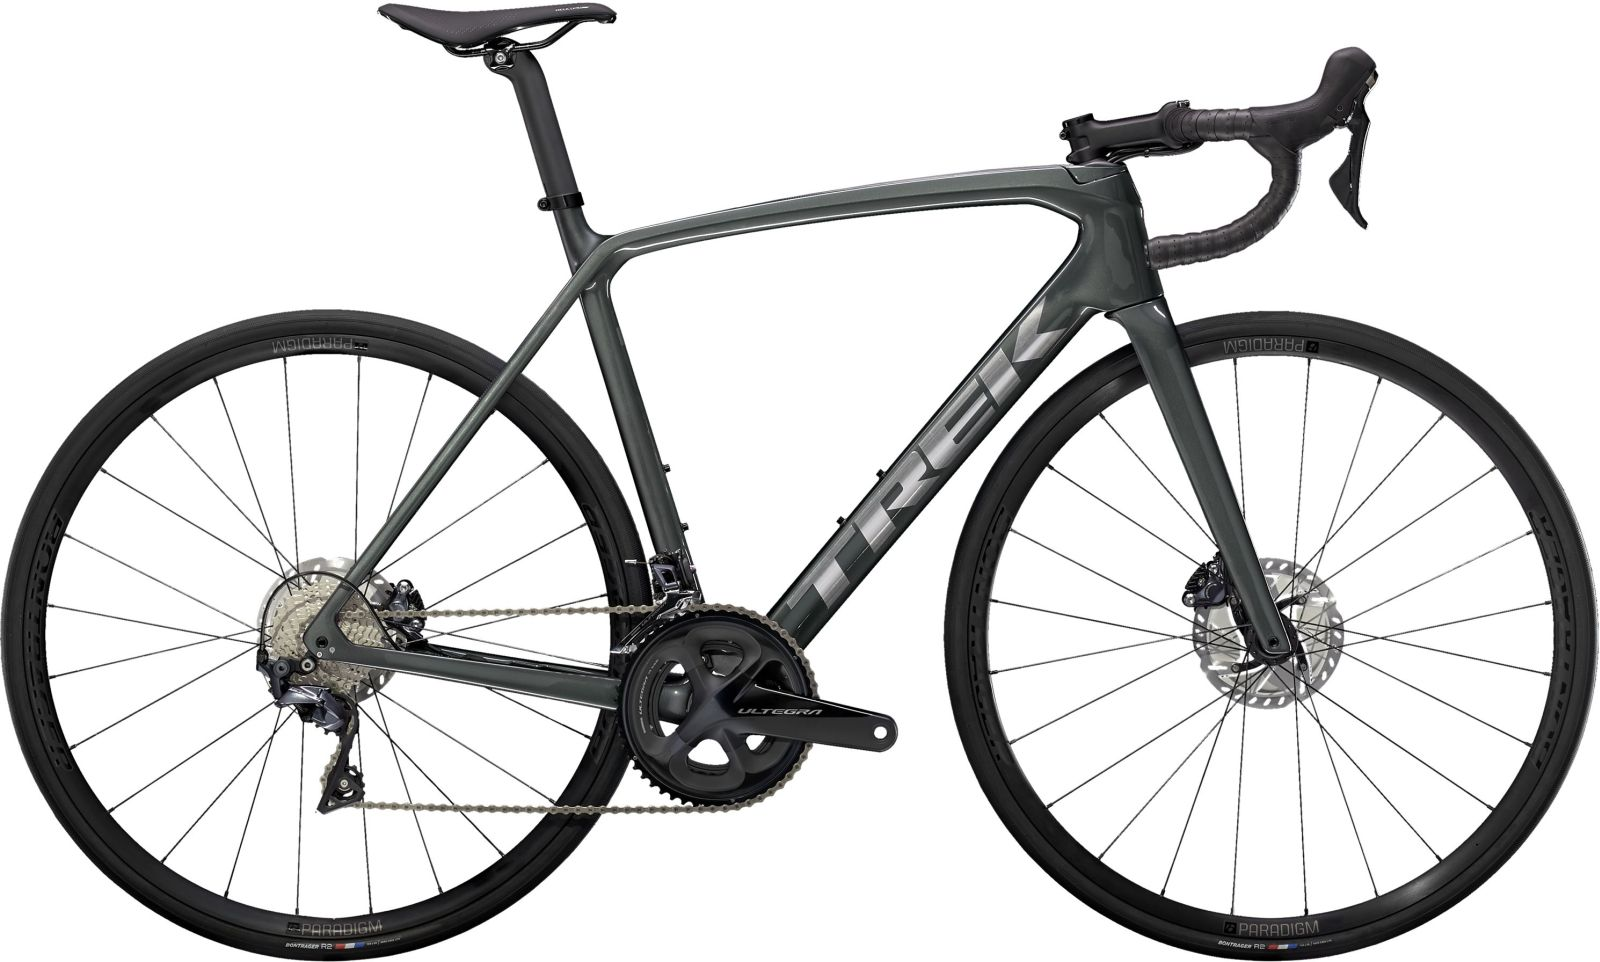 Trek Emonda SL 6 Disc - Lithium Grey/Brushed Chrome 52